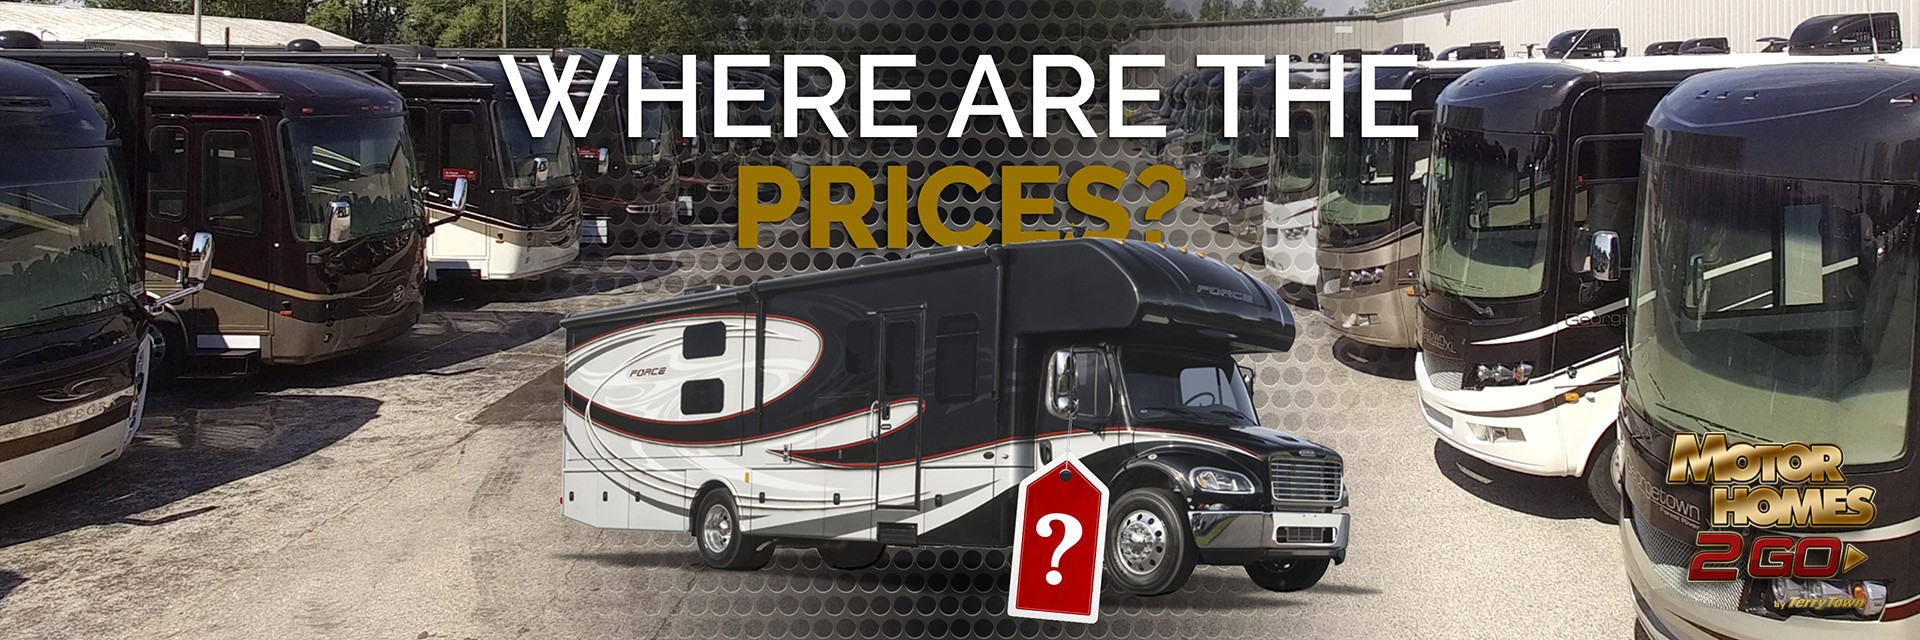 where are the prices - motorhomes Banner